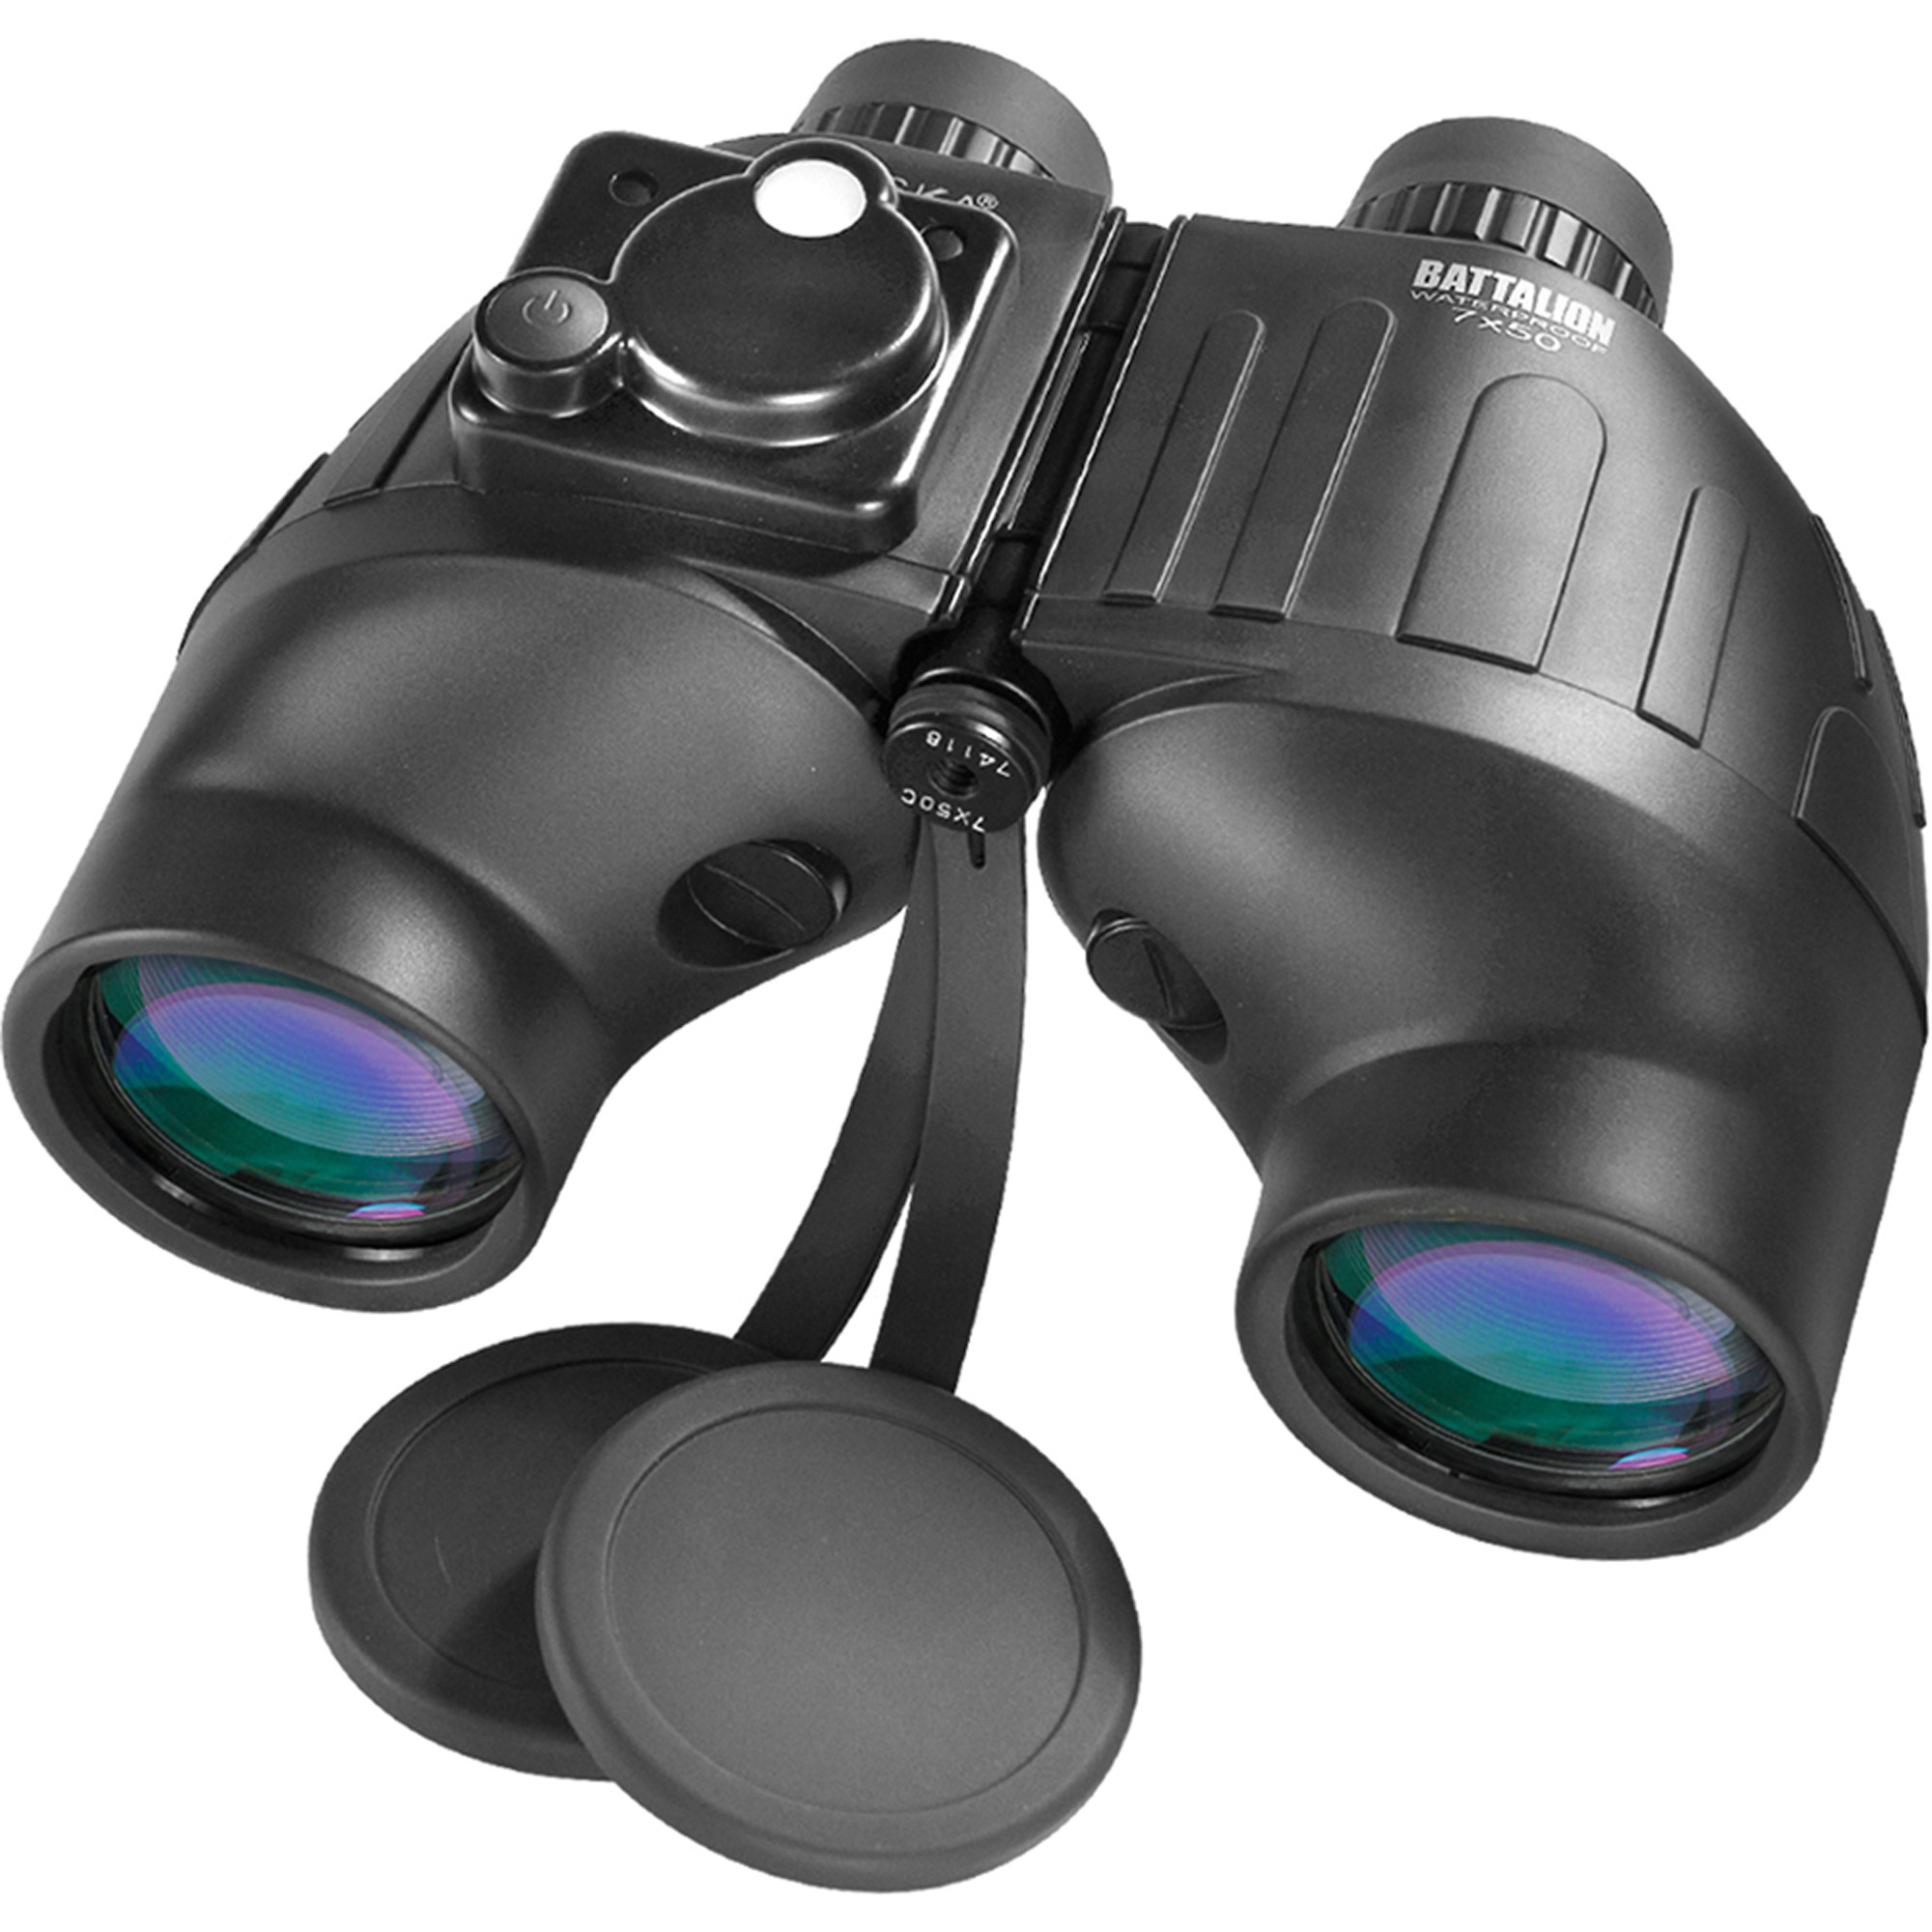 Barska Optics Battalion Binoculars, 7x50mm, Rangefinder/Compass